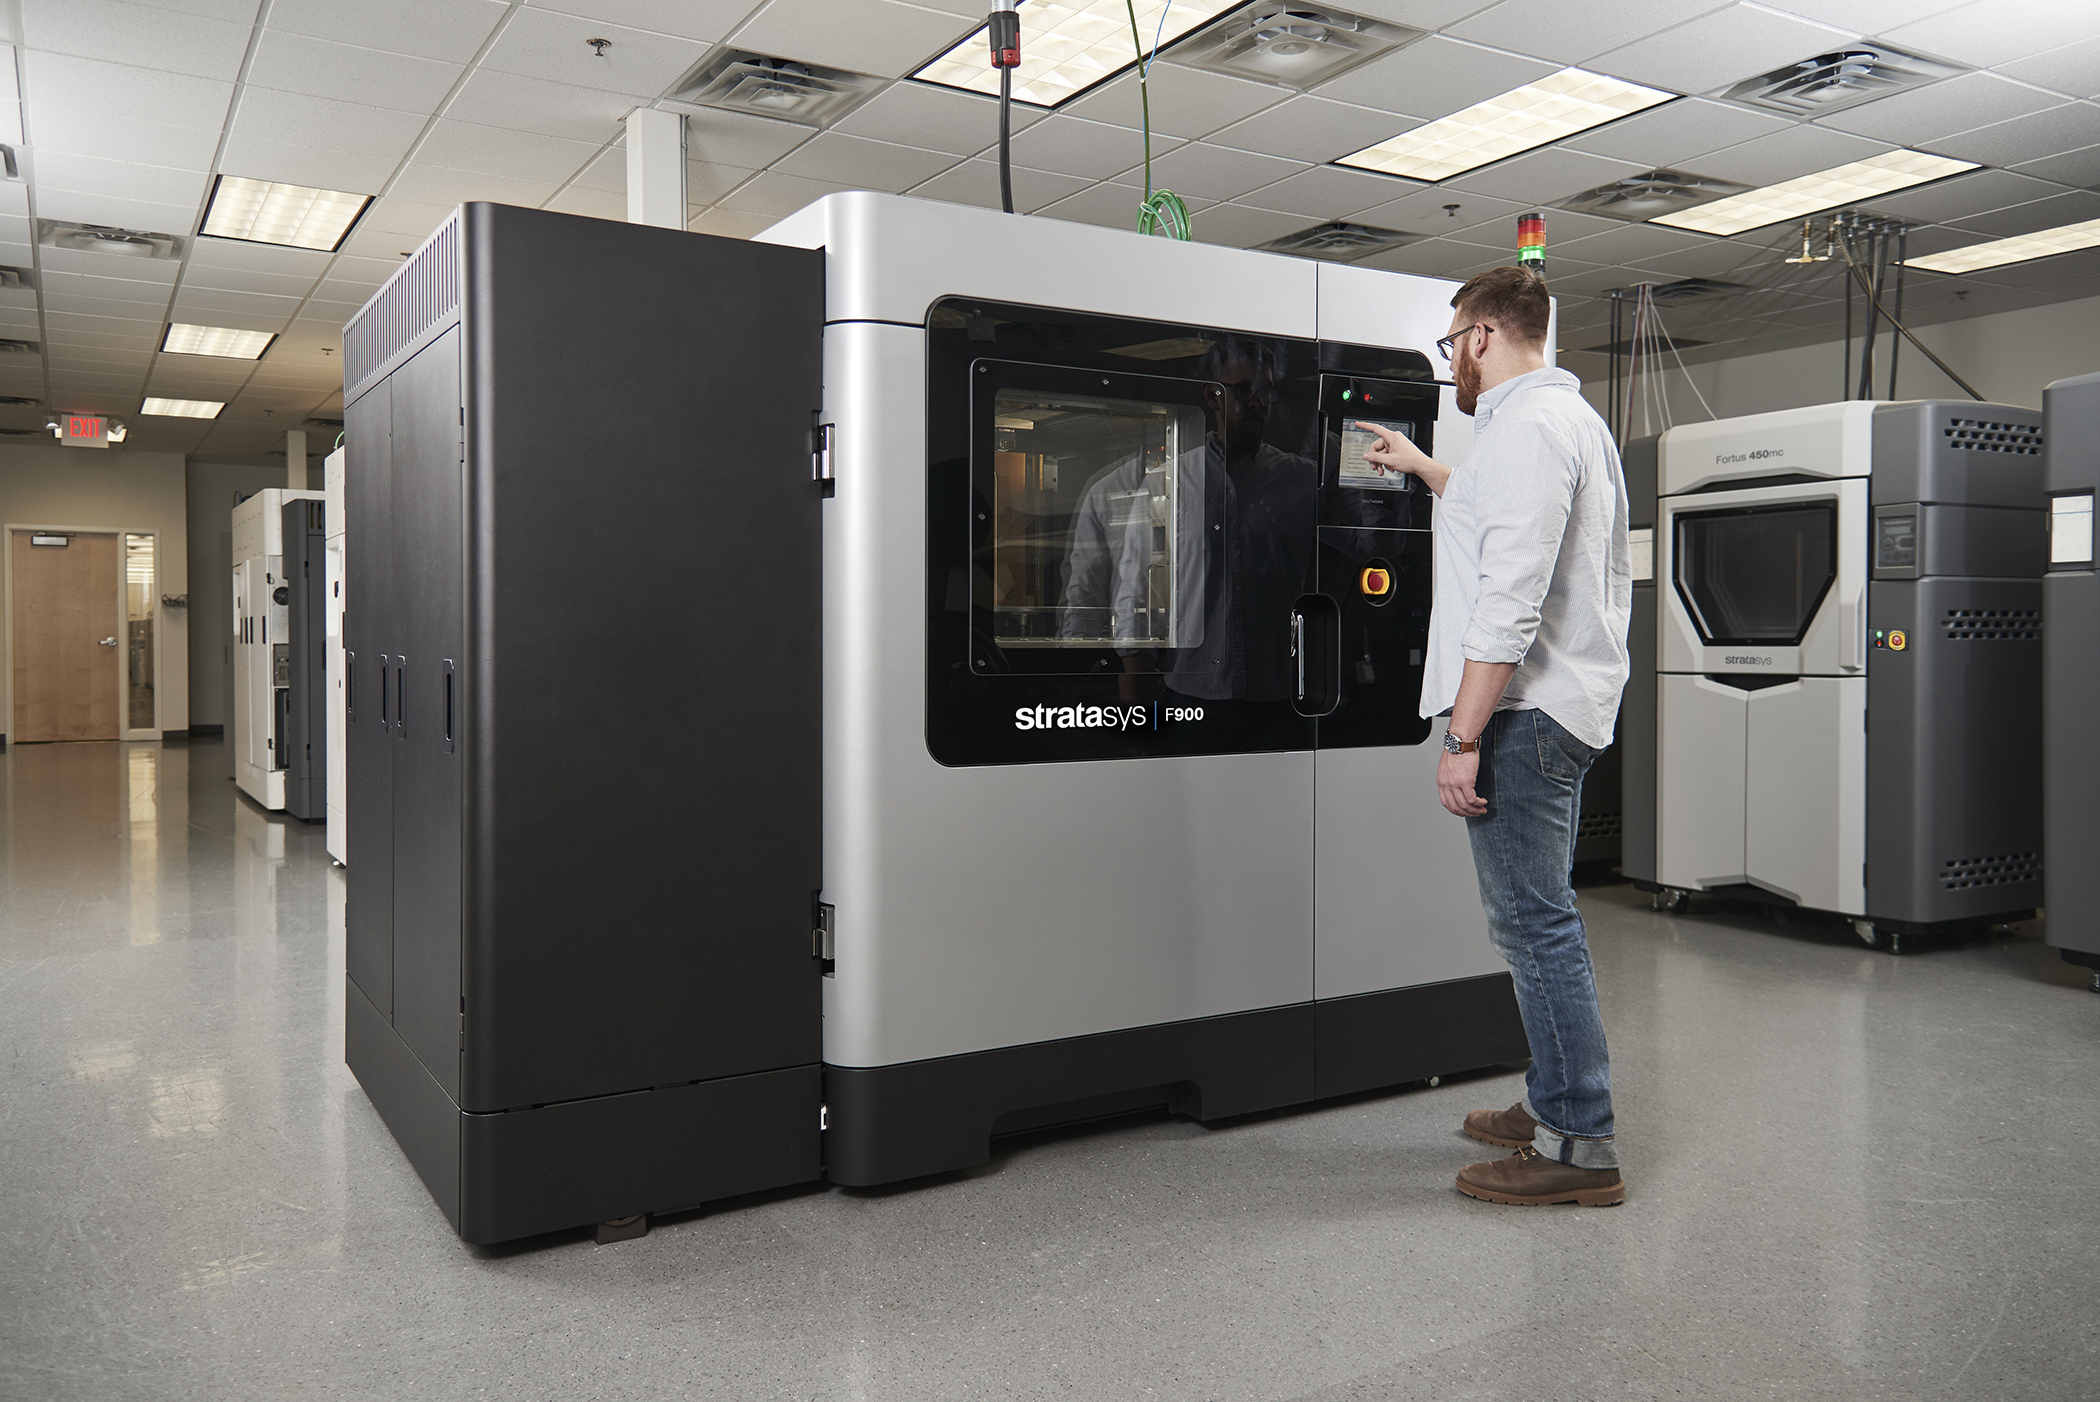 The F900 3D printer from Stratasys. Photo via Stratasys.